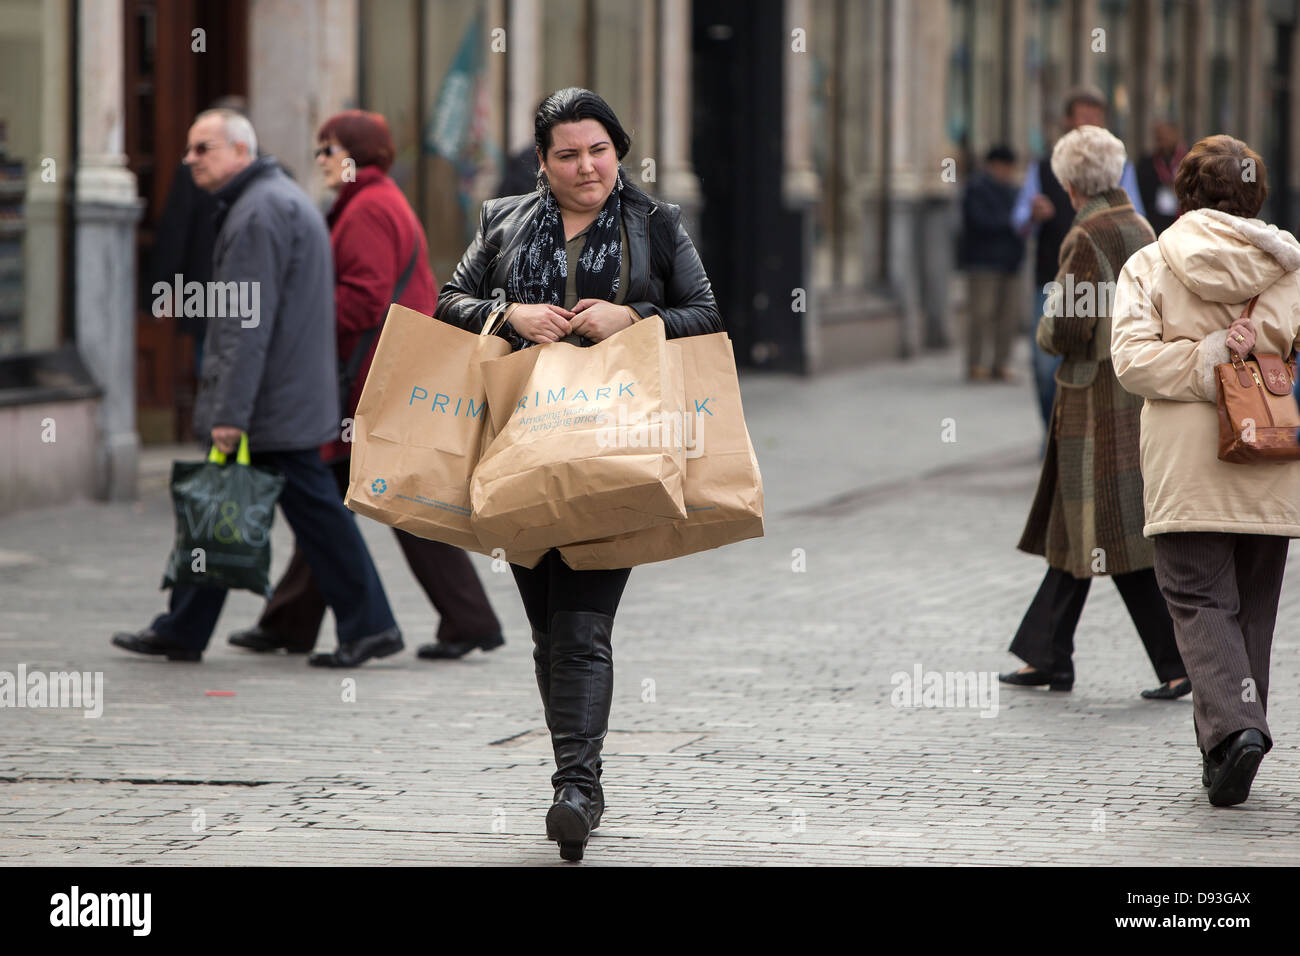 A woman walks through Liverpool city centre carrying Primark shopping bags - Stock Image